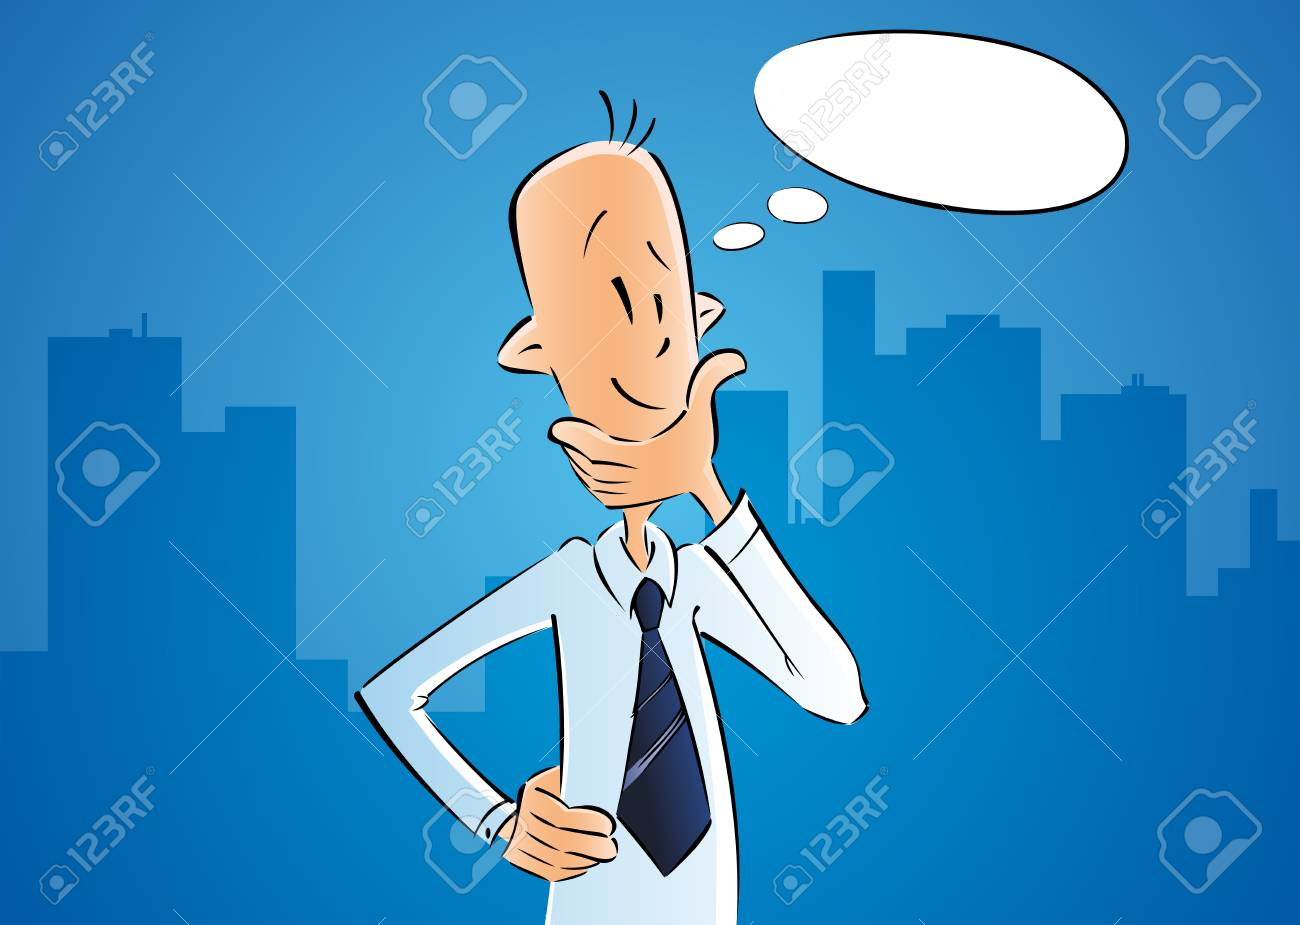 Business man thinking with idea in bubble. Businessman cartoon character on blue city background. Vector design - 99275742